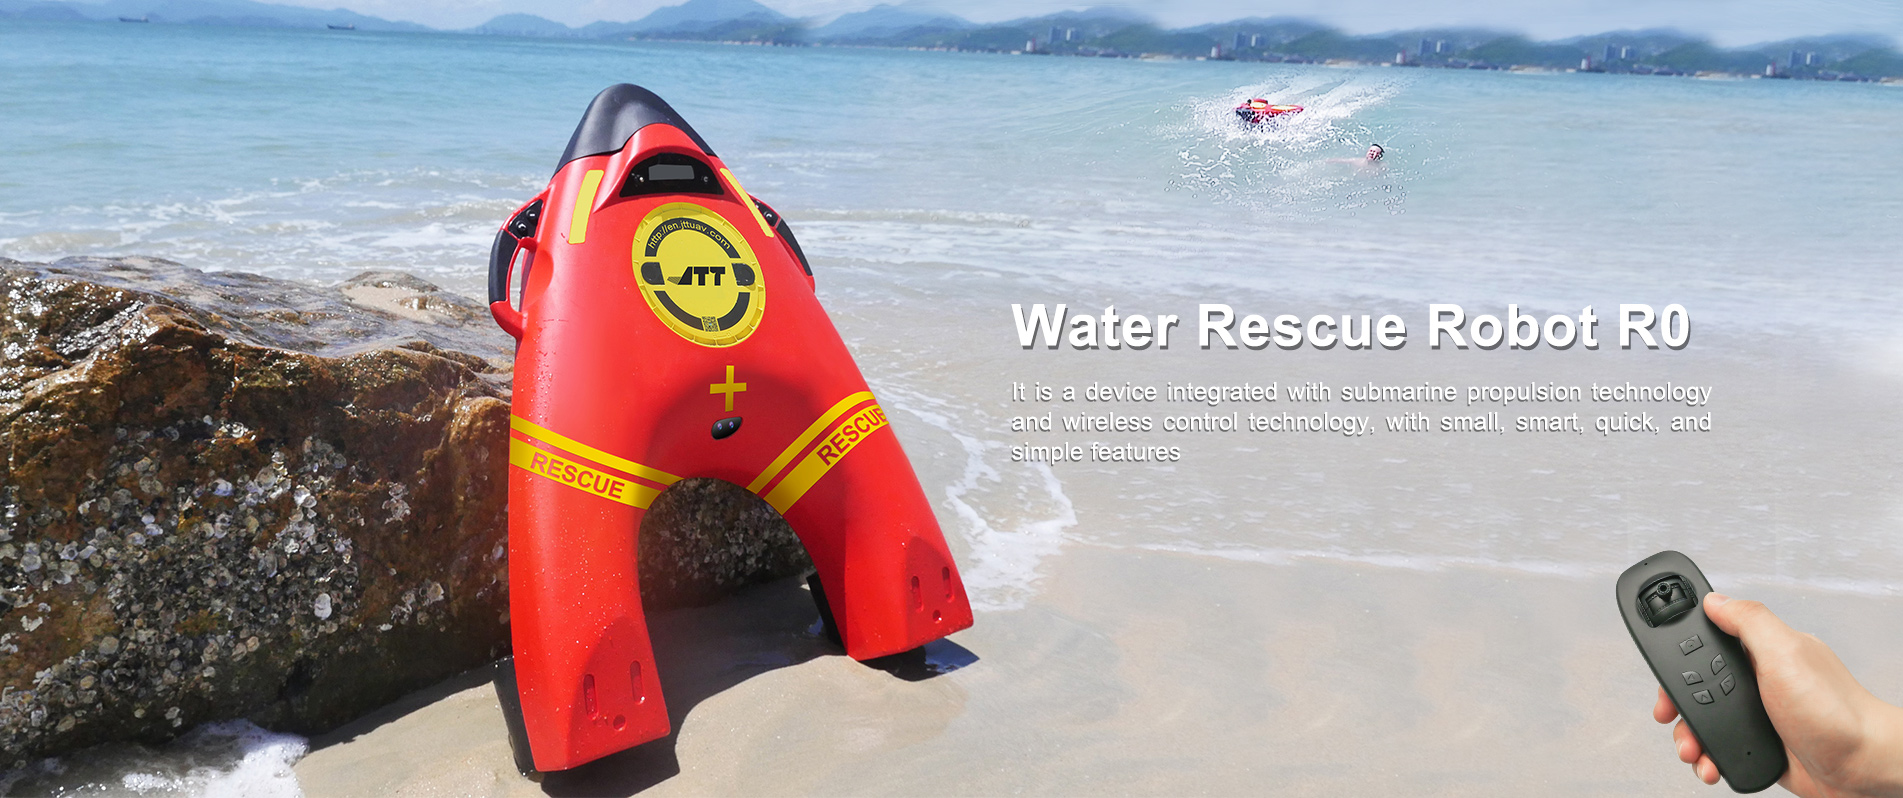 Water Rescue Robot R0